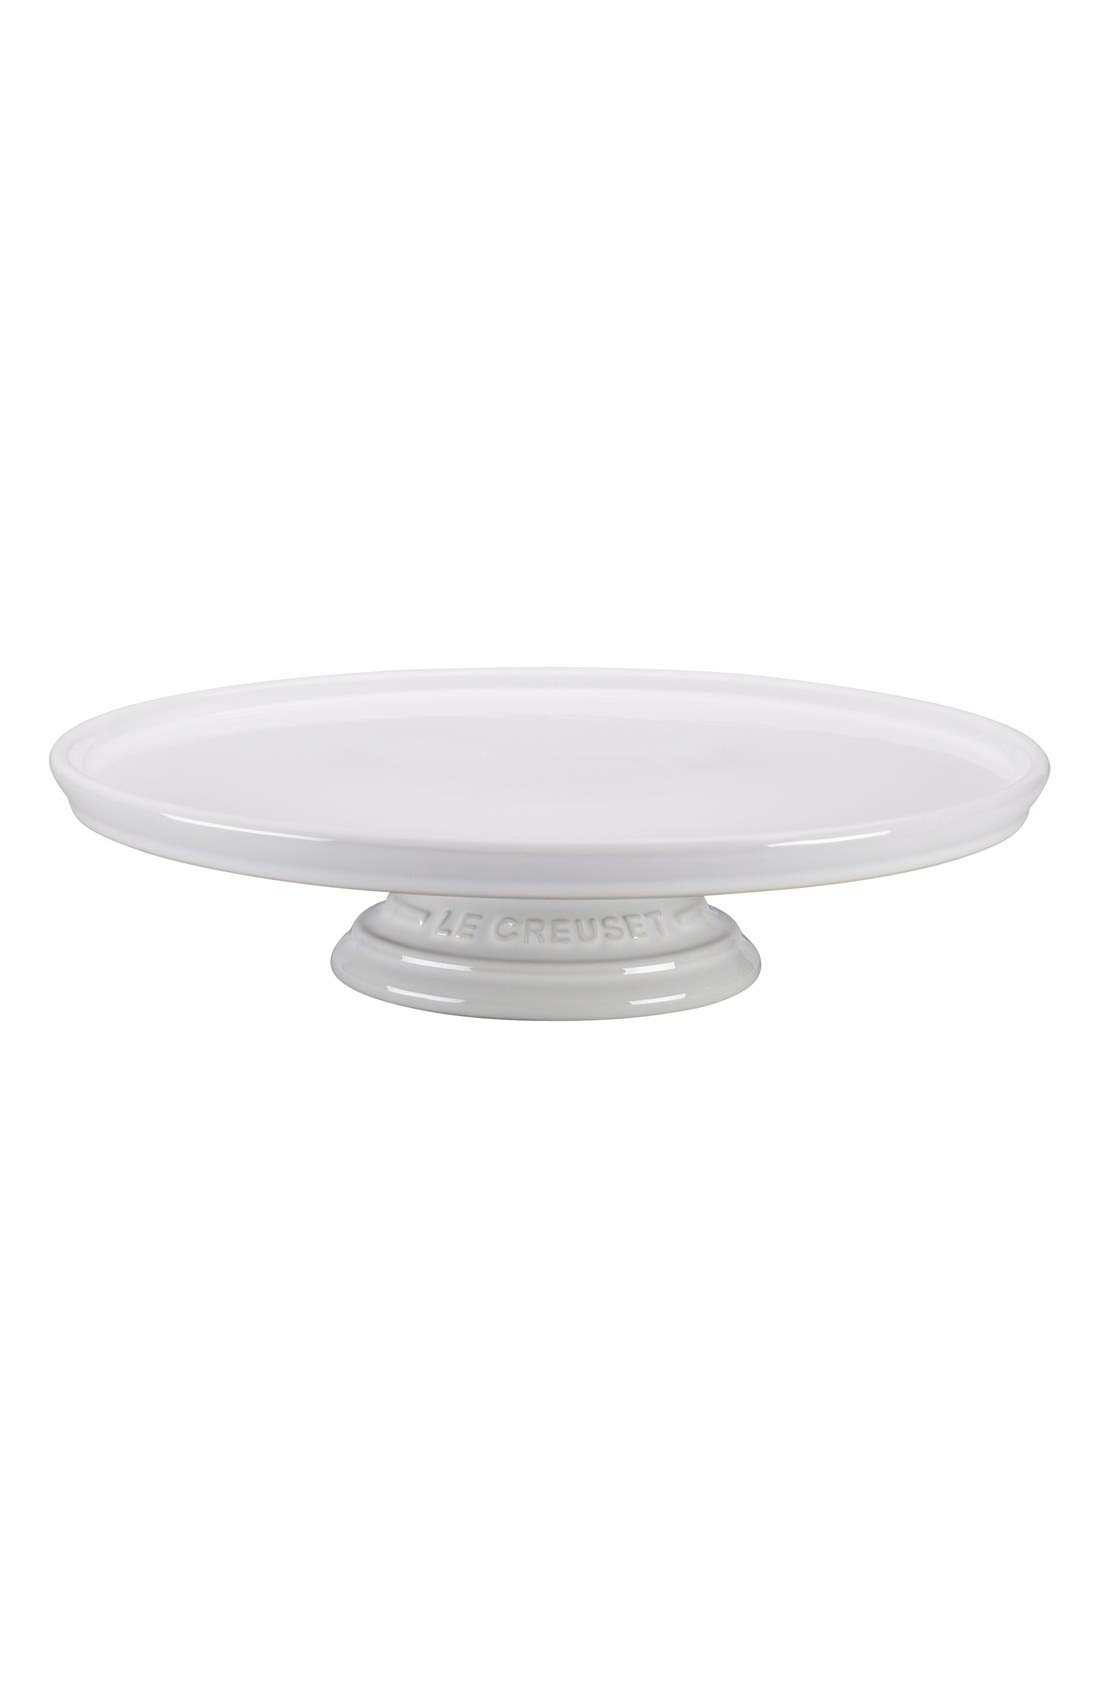 Alternate Image 1 Selected - Le Creuset Stoneware Cake Stand